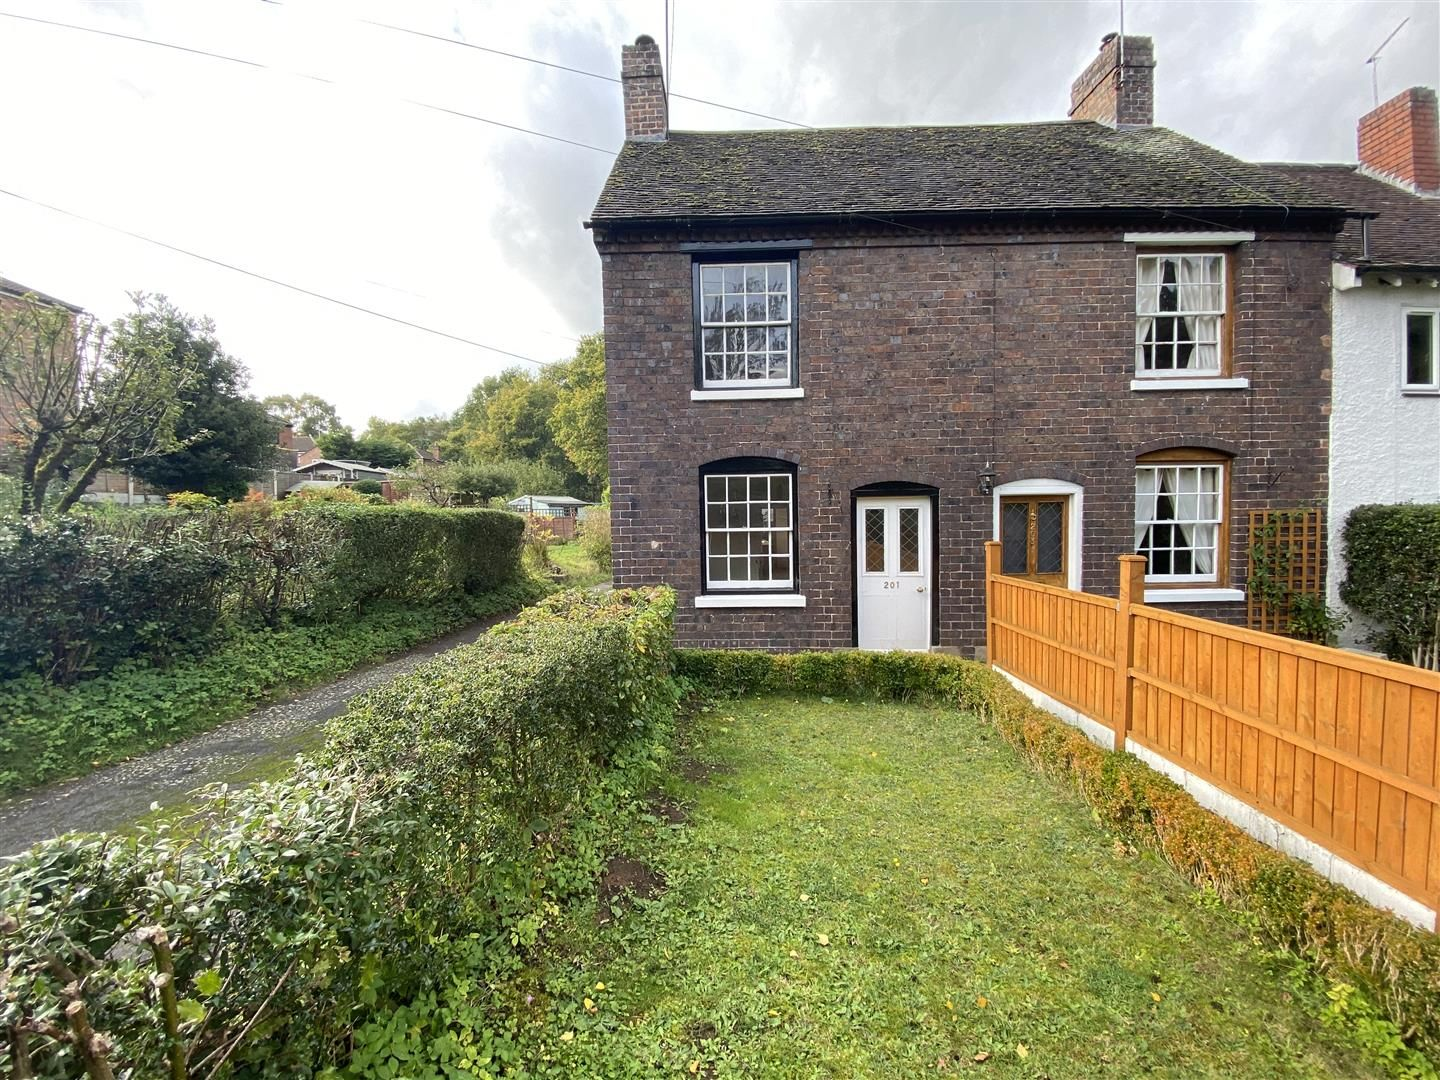 2 bed end-of-terrace for sale in Kinver  - Property Image 16